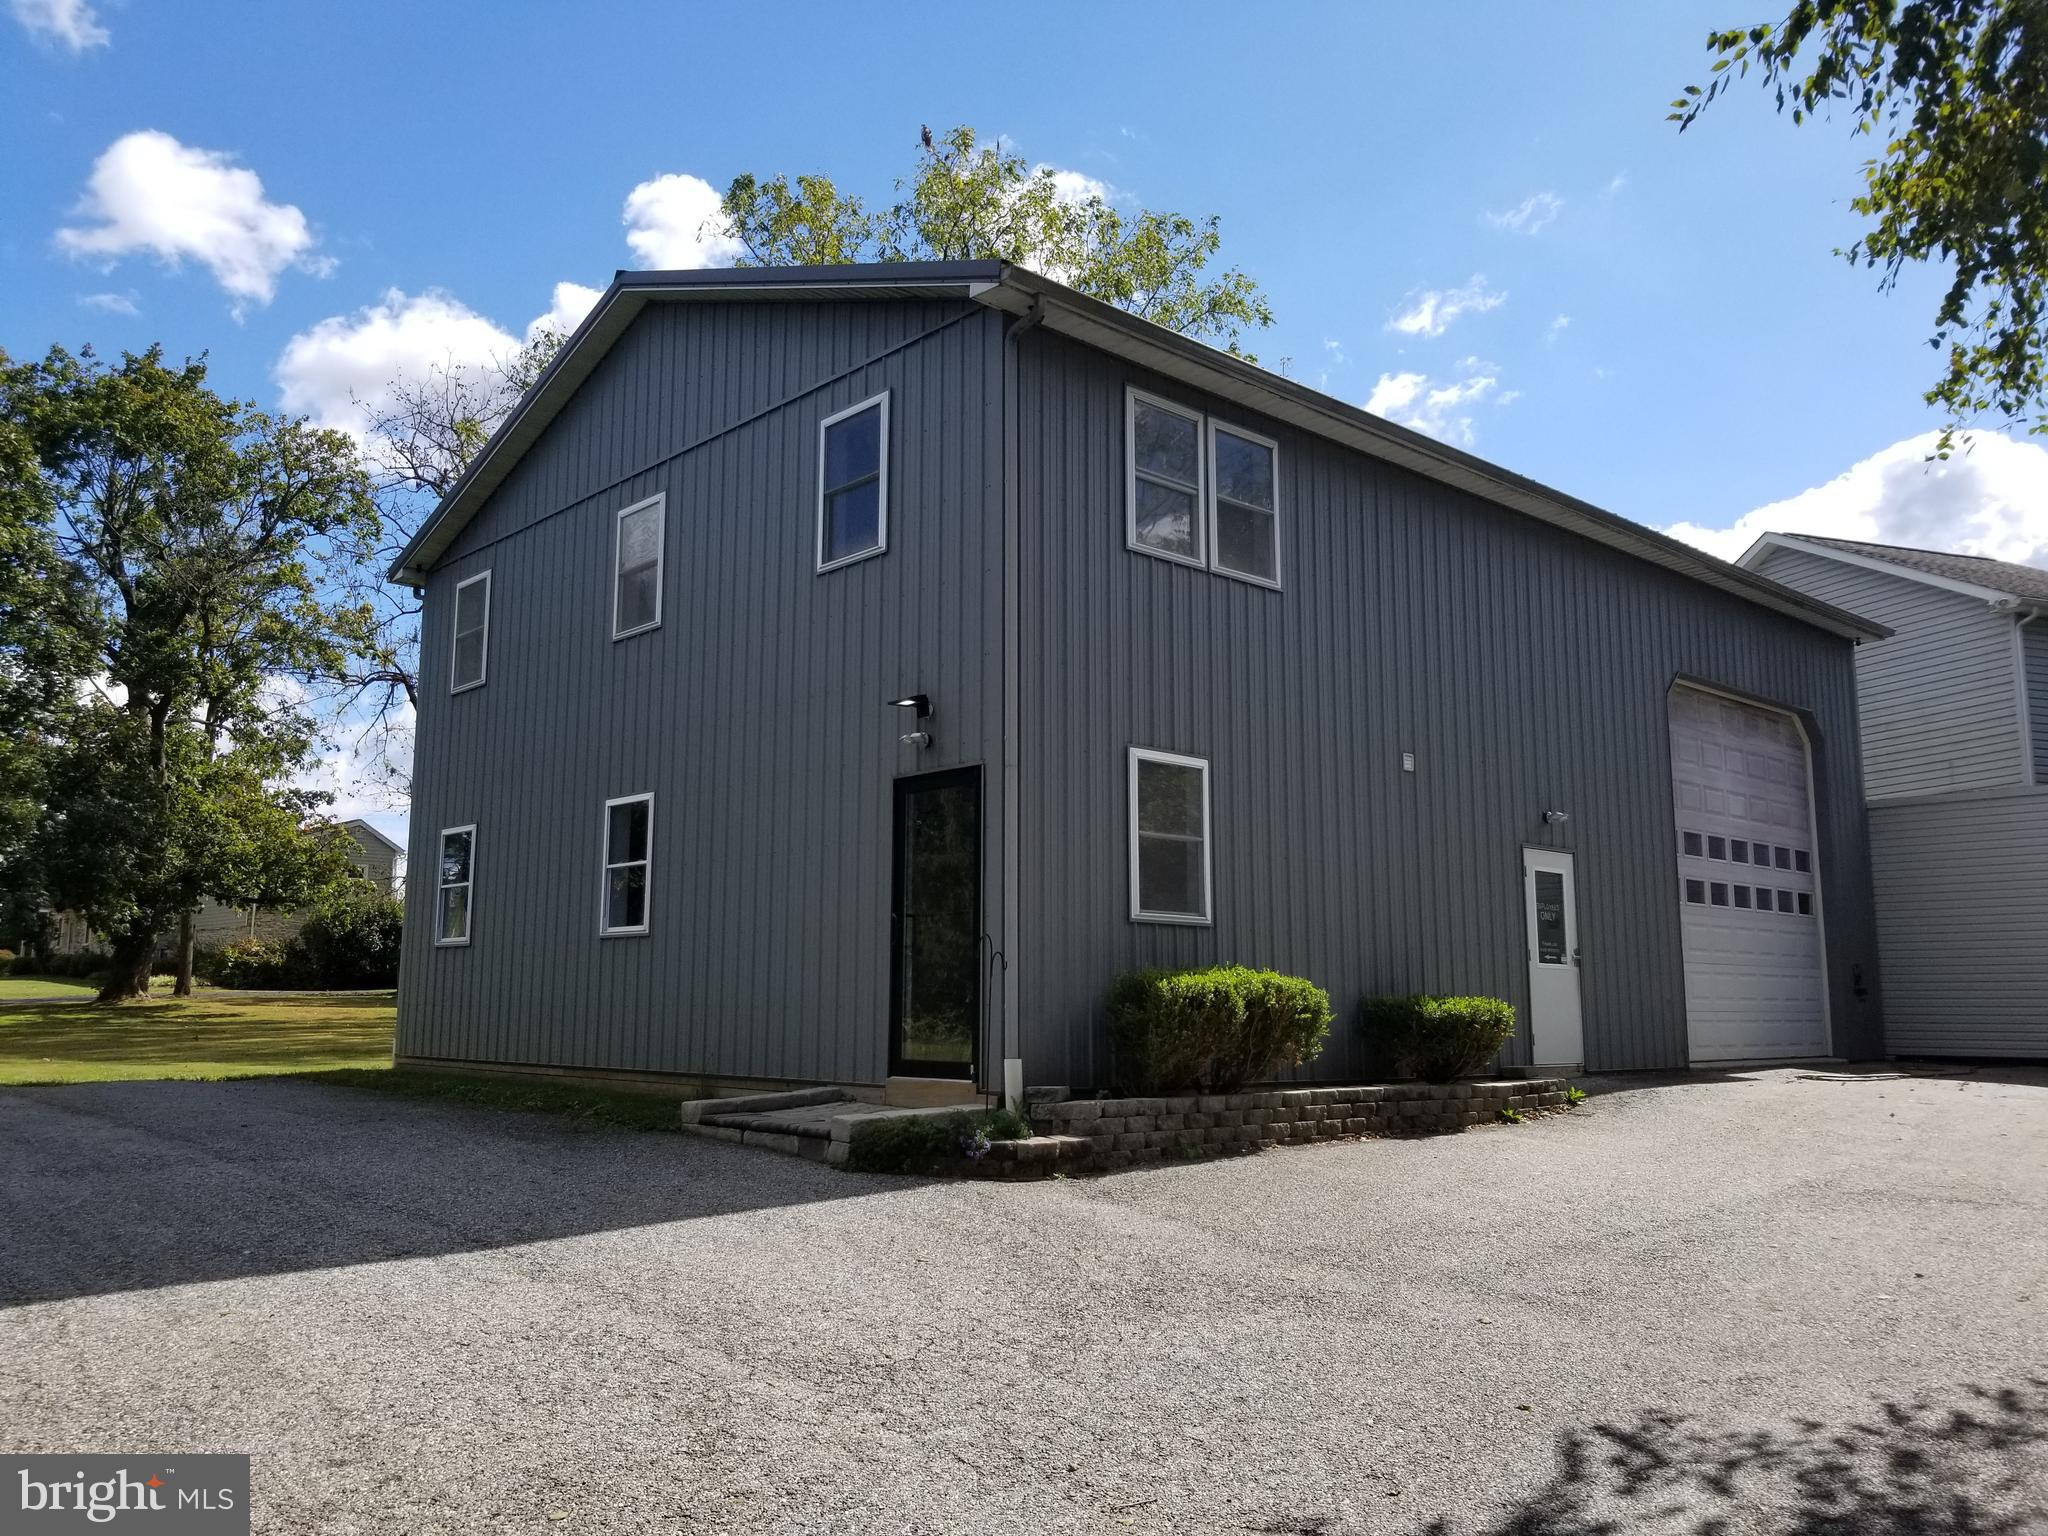 Great location with 1600sf office space and 800sf warehouse space. Offices feature natural lighting and central AC. Radiant flooring throughout the entire building.  200+ AMP service. Separate employee entrance, client entrance lobby door with waiting room/reception area, and drive-in door measuring approx 14'x14'. Kitchen area with countertops and sink. 3 private offices with storage closets. First floor features with restroom.  Rental Area includes building and parking areas. Owner is a PA Licensed REALTOR. Map doesn't show correct building. It is the 2-story shop.